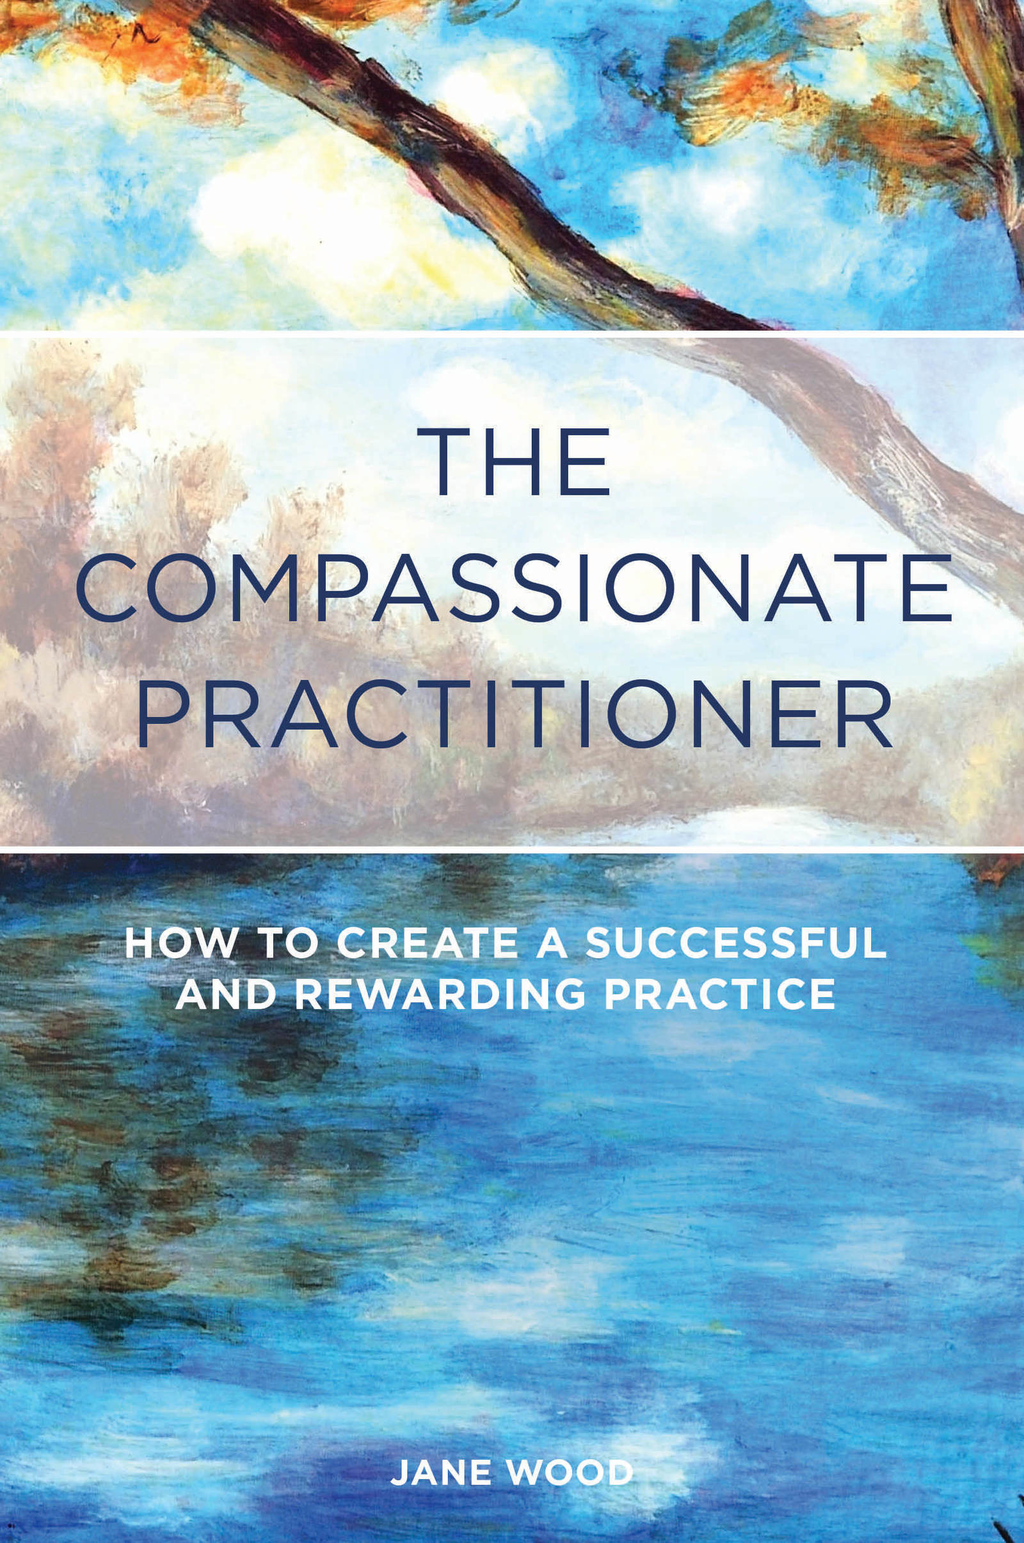 The Compassionate Practitioner How to create a successful and rewarding practice